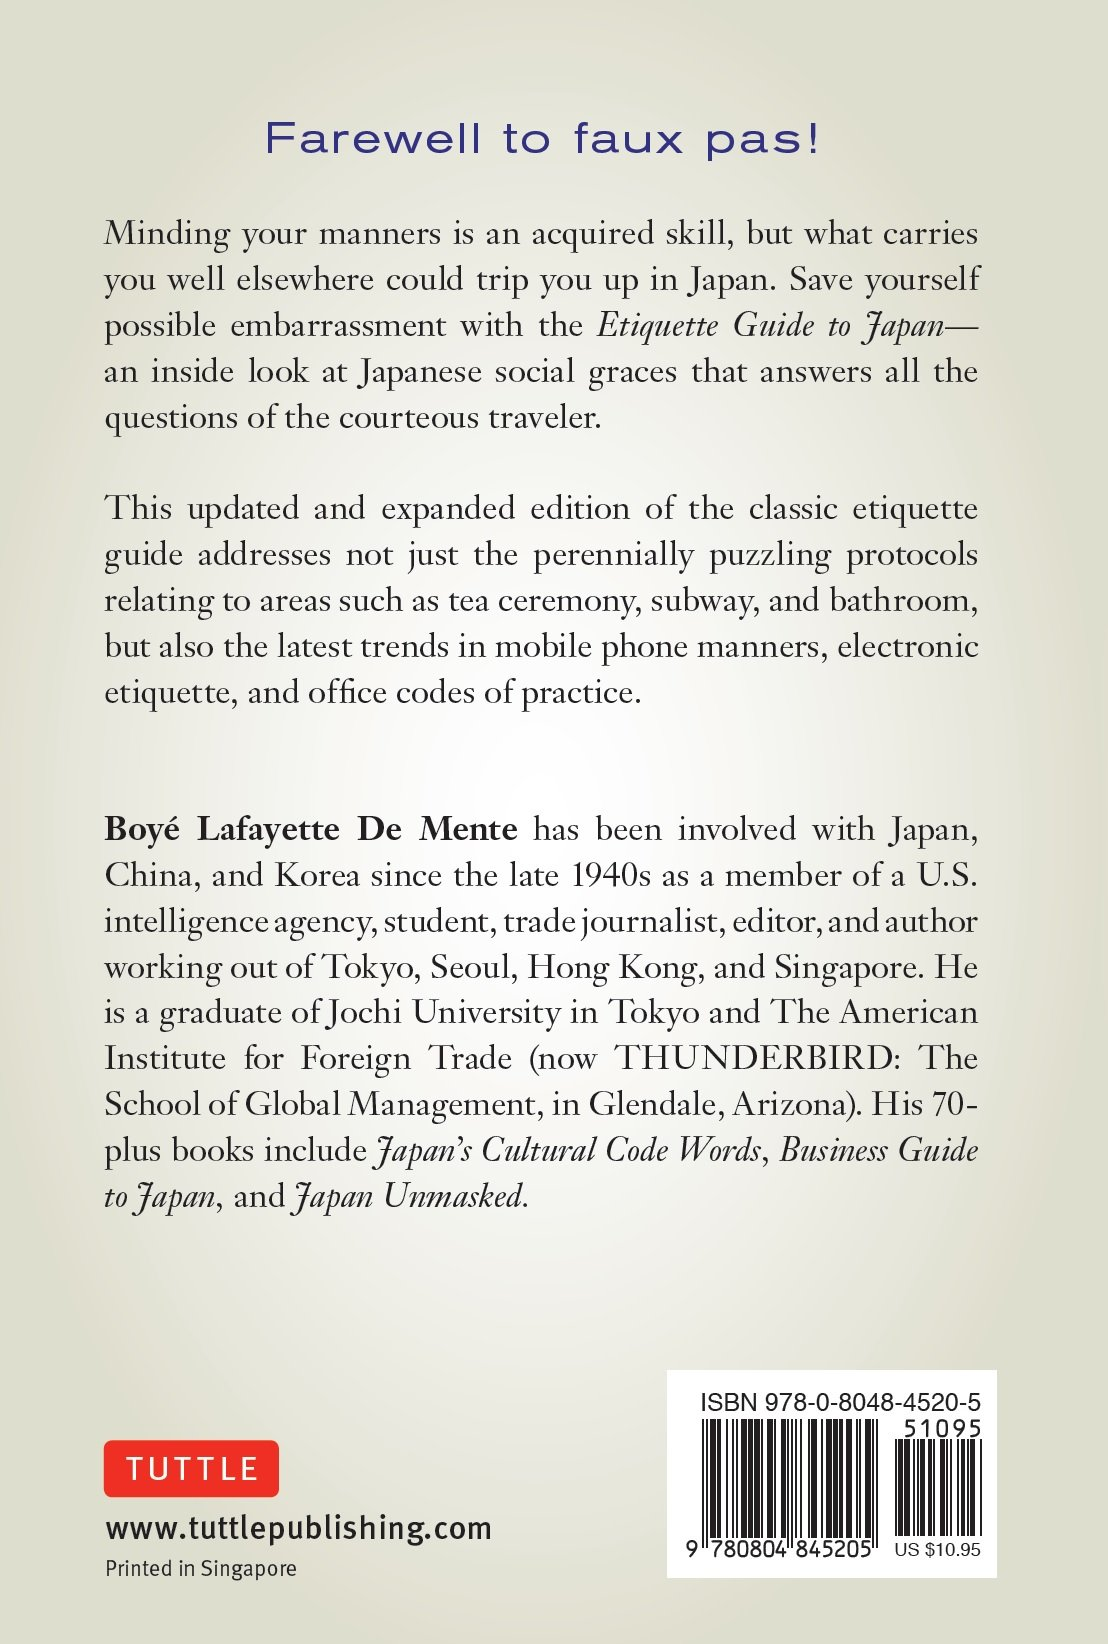 Etiquette guide to korea know the rules that make the difference etiquette guide to korea know the rules that make the difference boye lafayette de mente david lukens 9780804845205 amazon books fandeluxe Image collections